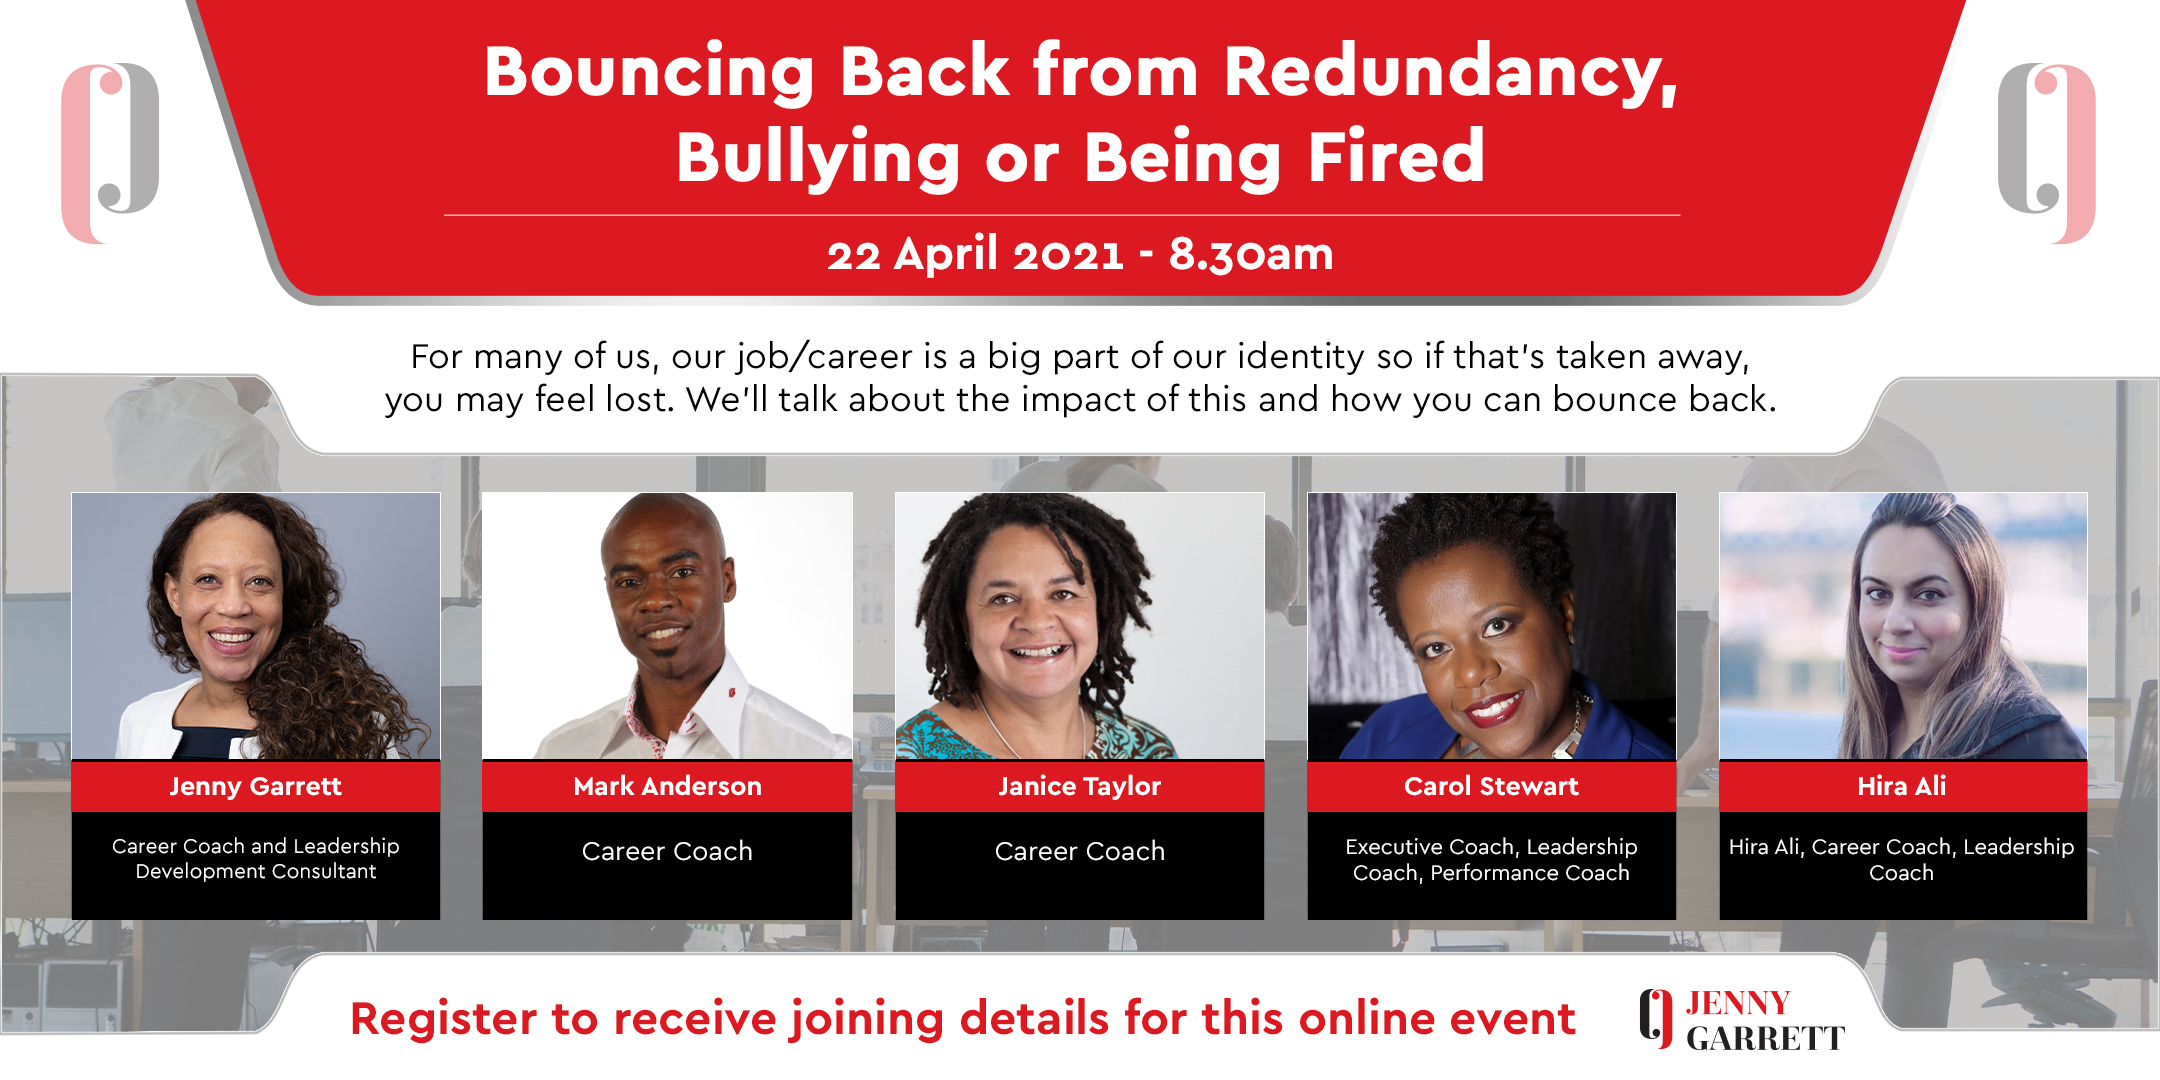 Bouncing Back from Redundancy, Bullying or Being Fired